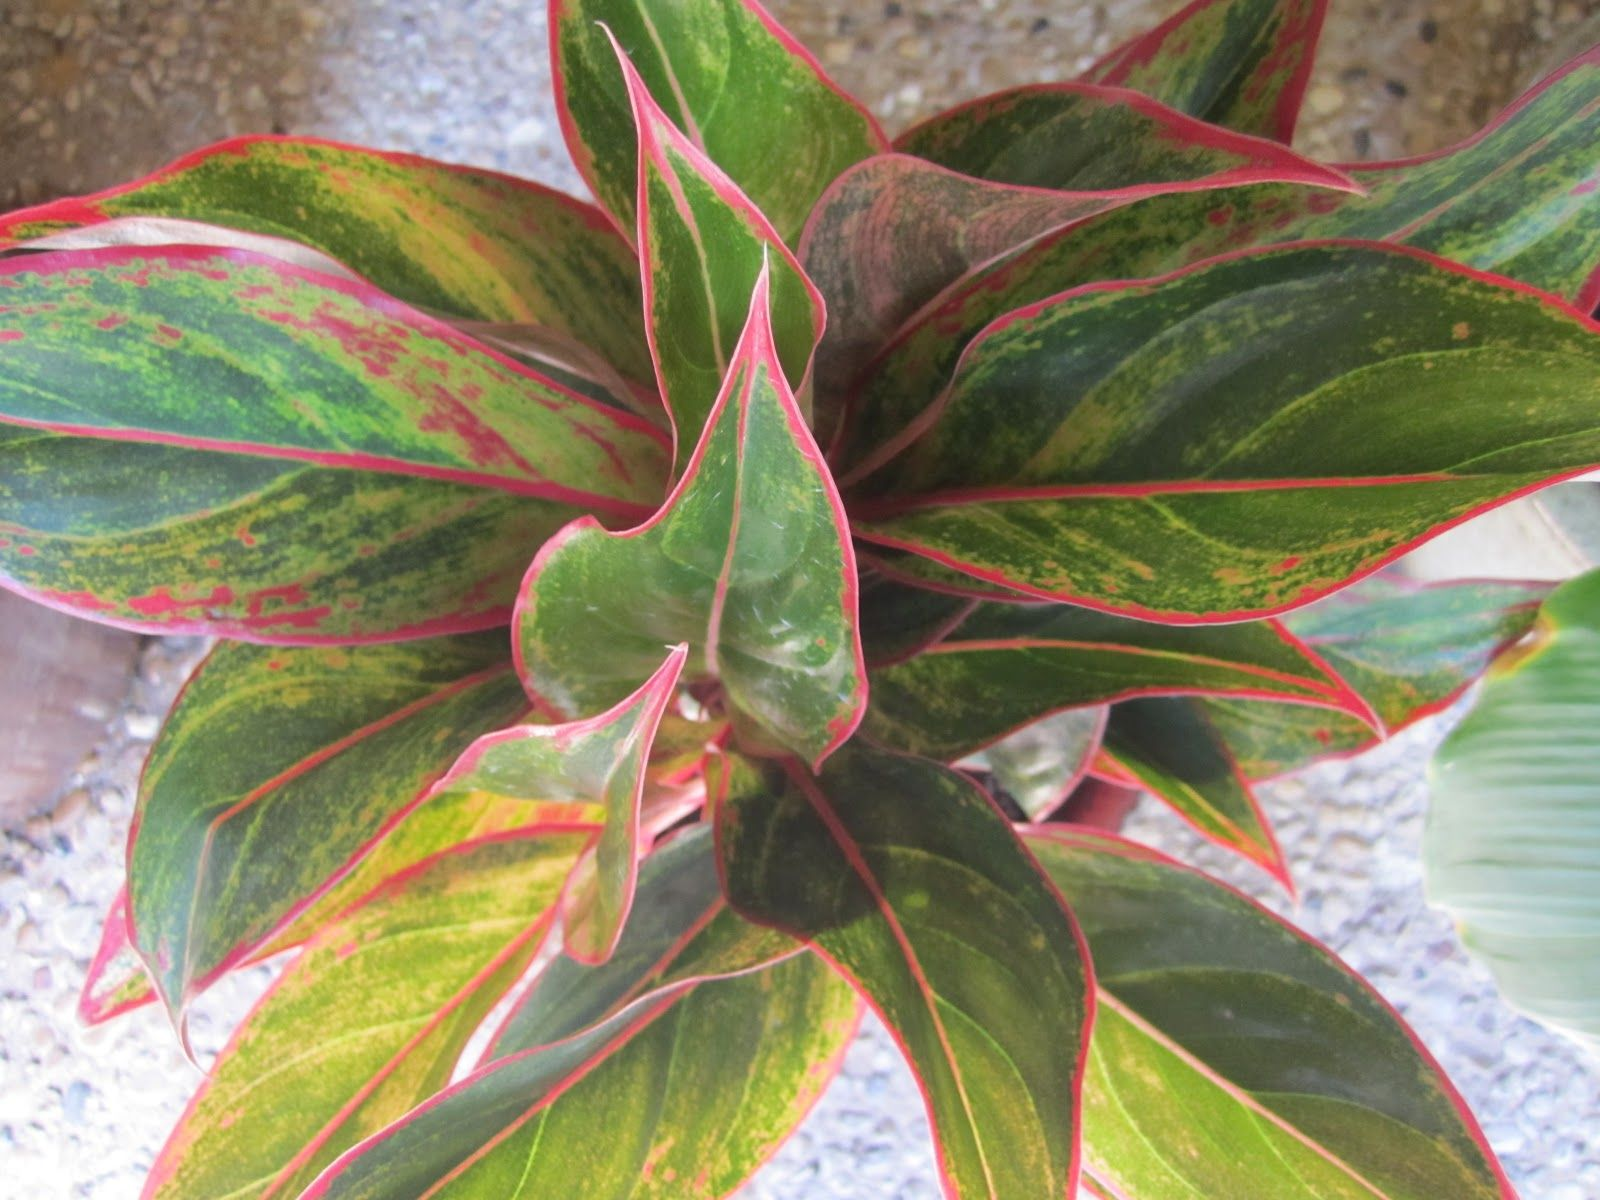 The Leaves Of The Chinese Evergreen Are Broad And Full